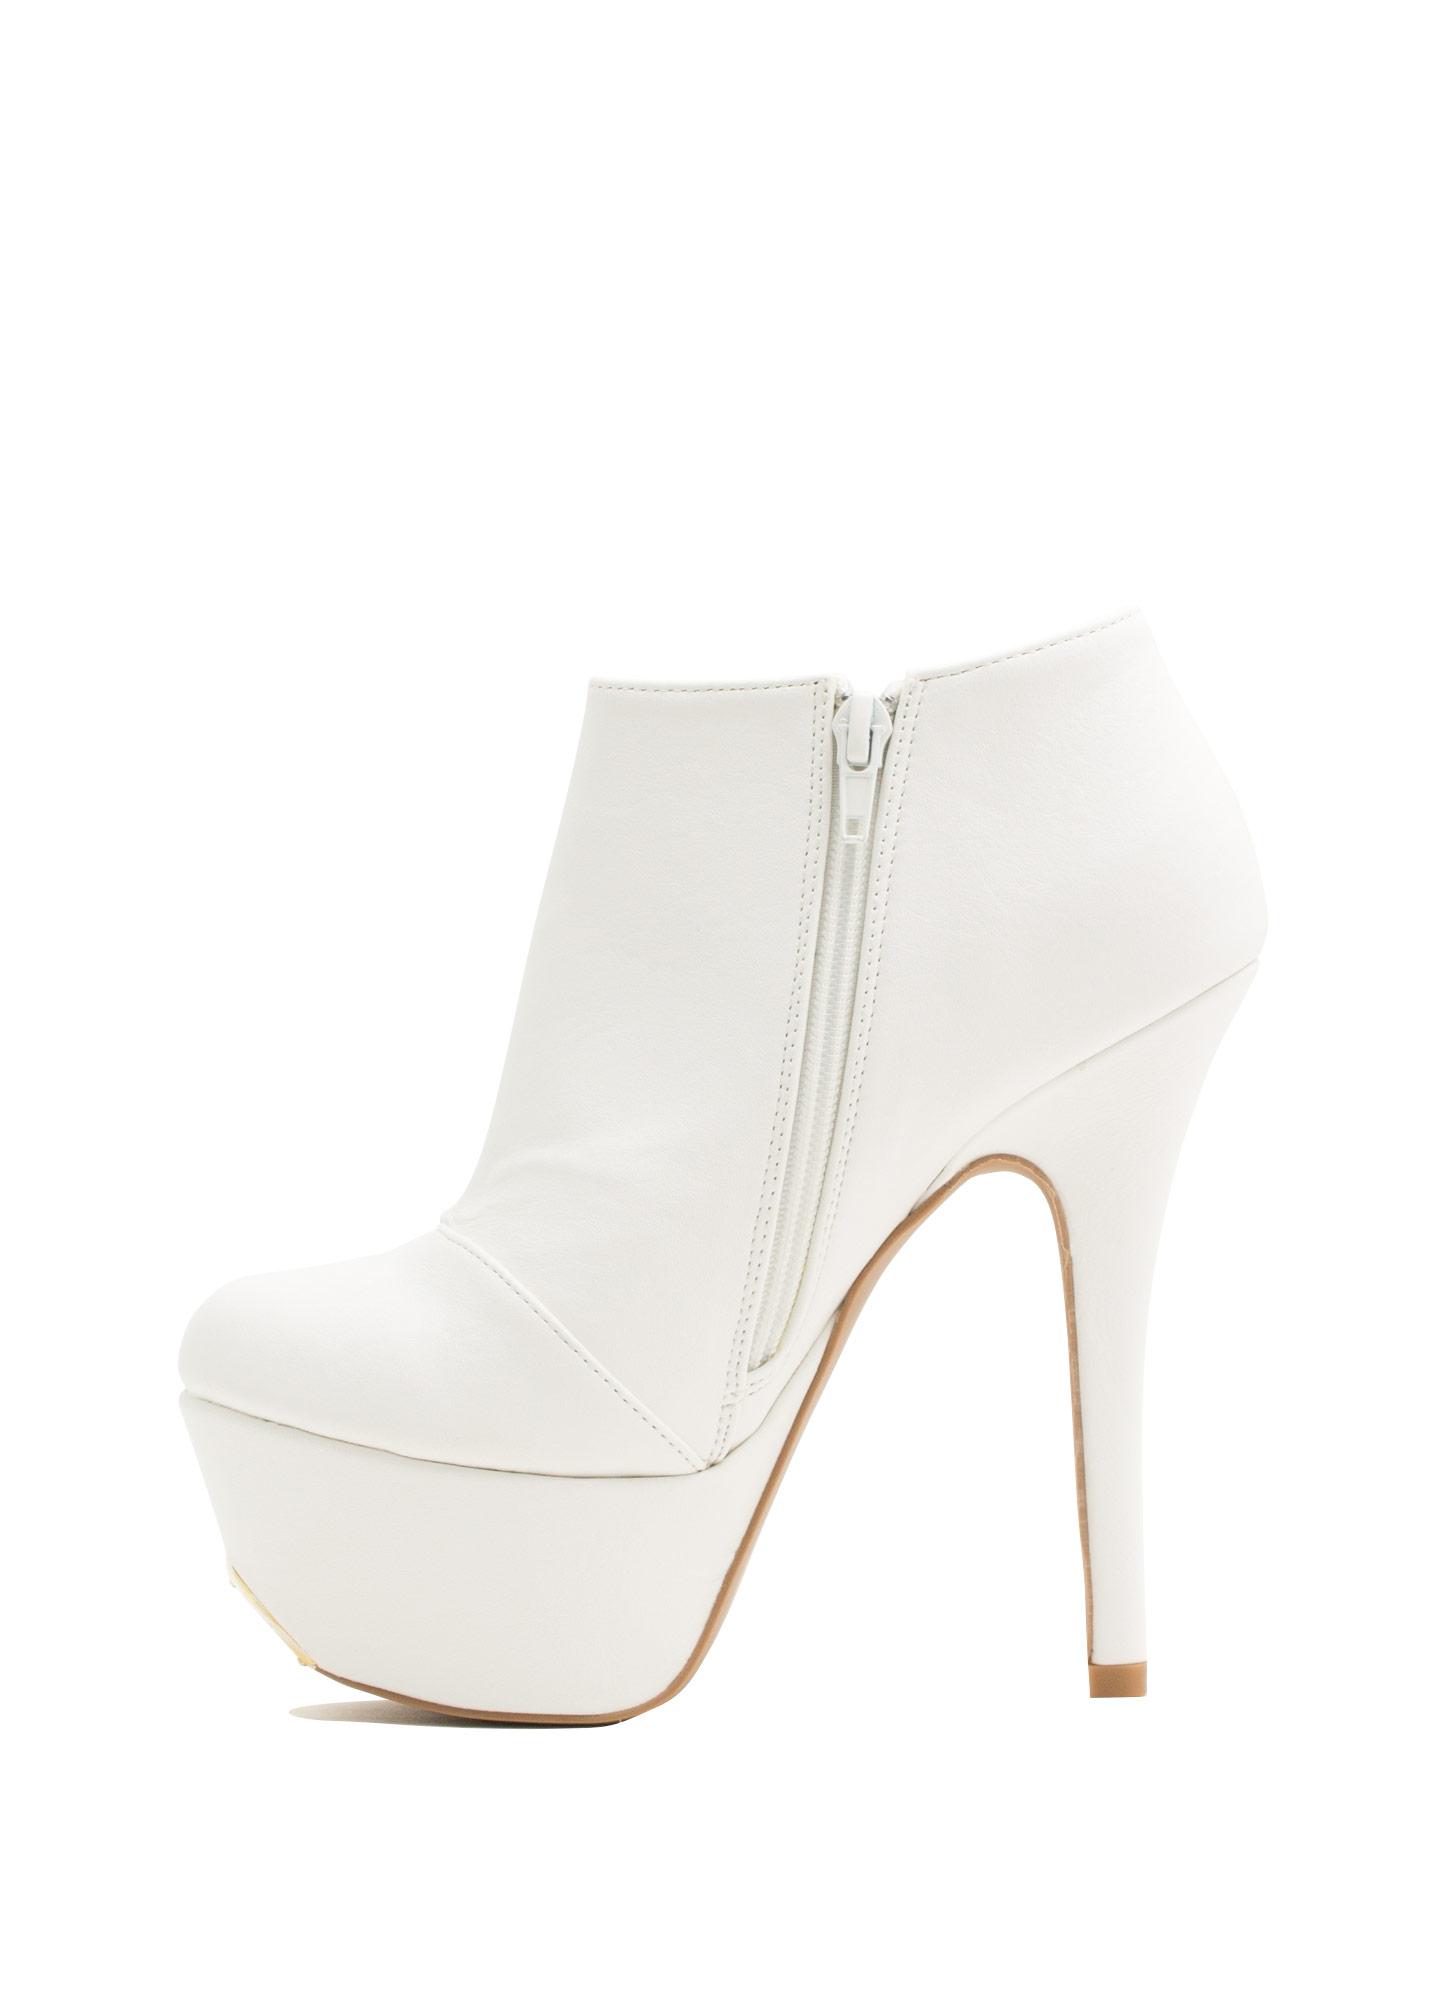 Battle Of Slits Platform Heels WHITE